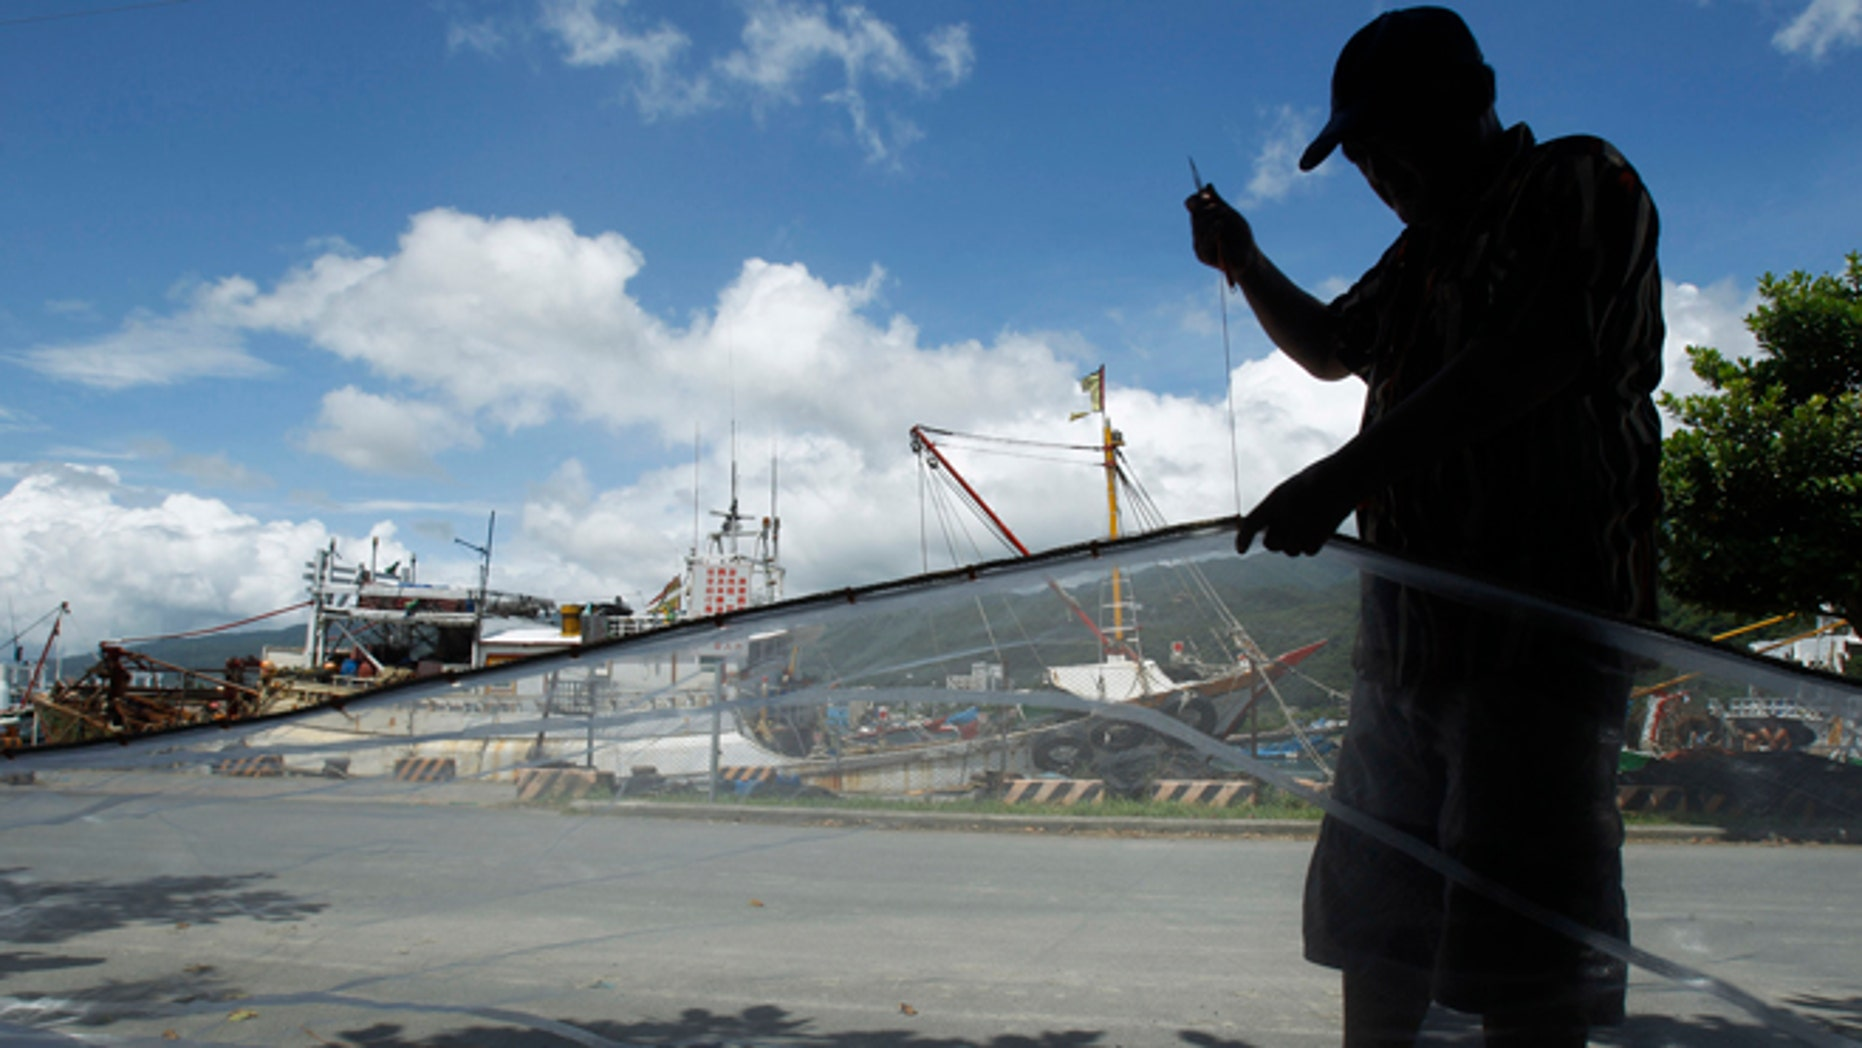 August 23, 2012: A fisherman repairs his nets at the dock as he waits out approaching Typhoon Tembin in the coastal village of Ilan, Taiwan.